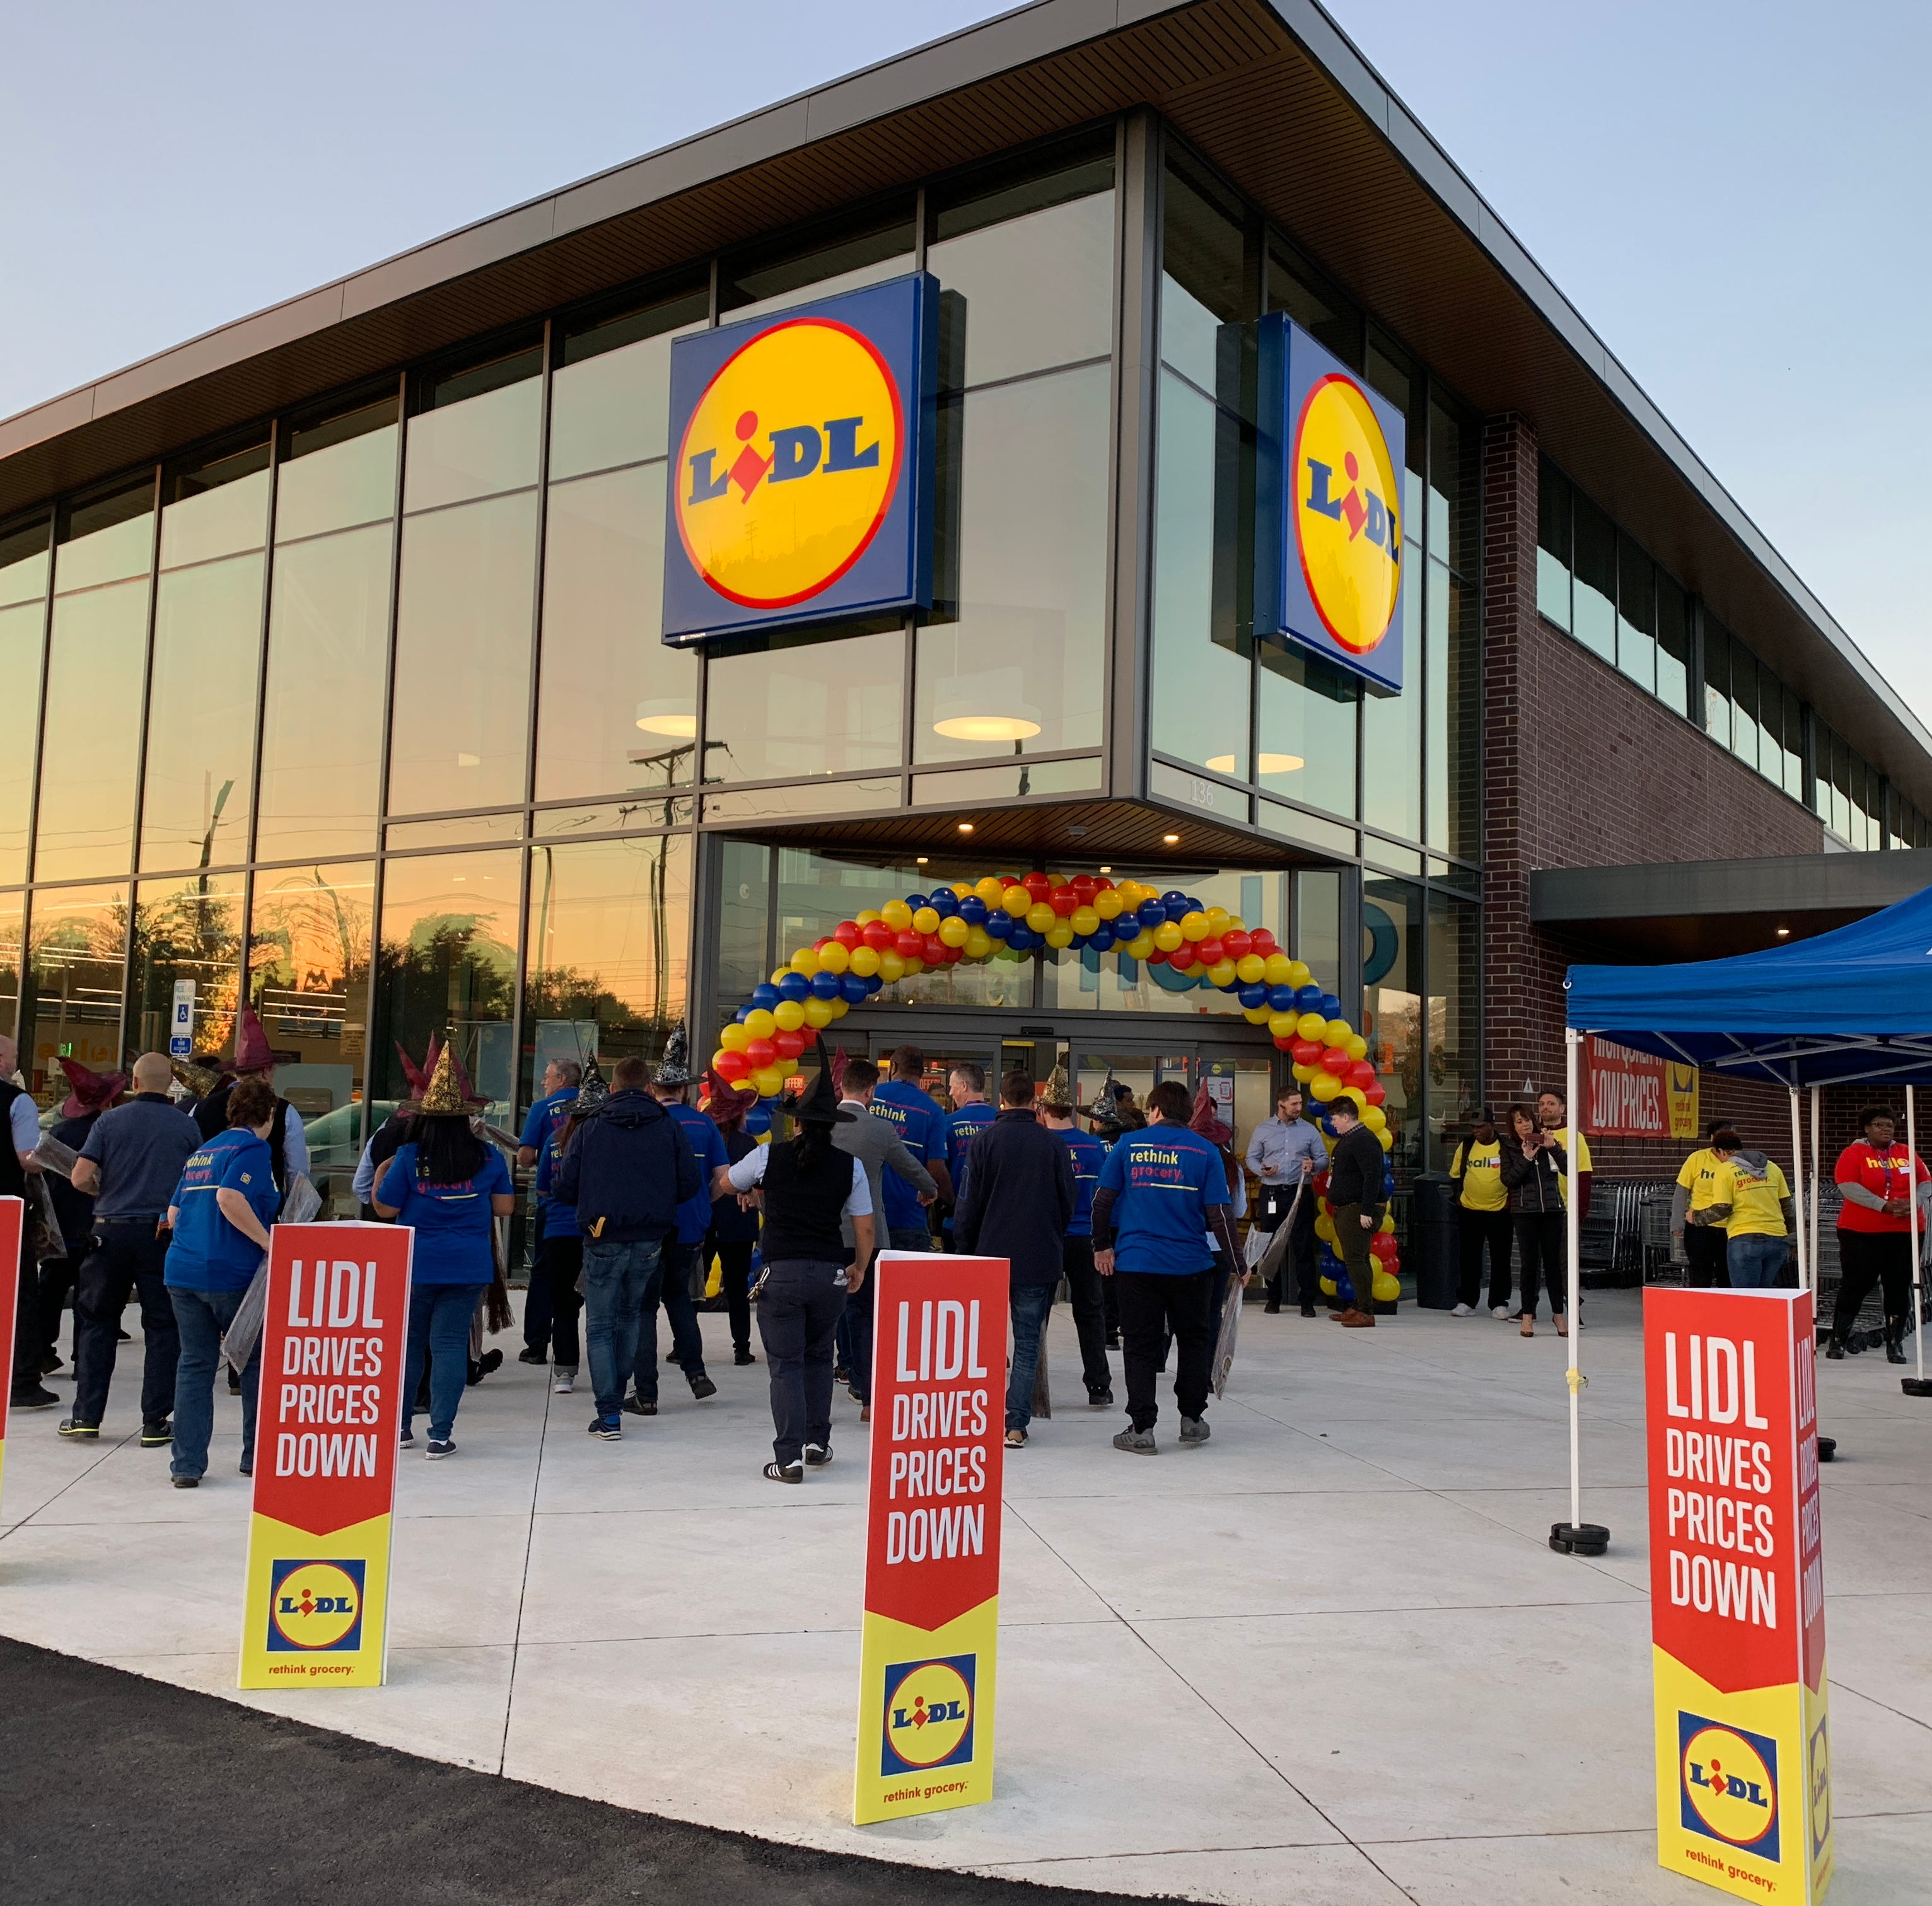 Discount grocer Lidl to buy Best Market in Holmdel